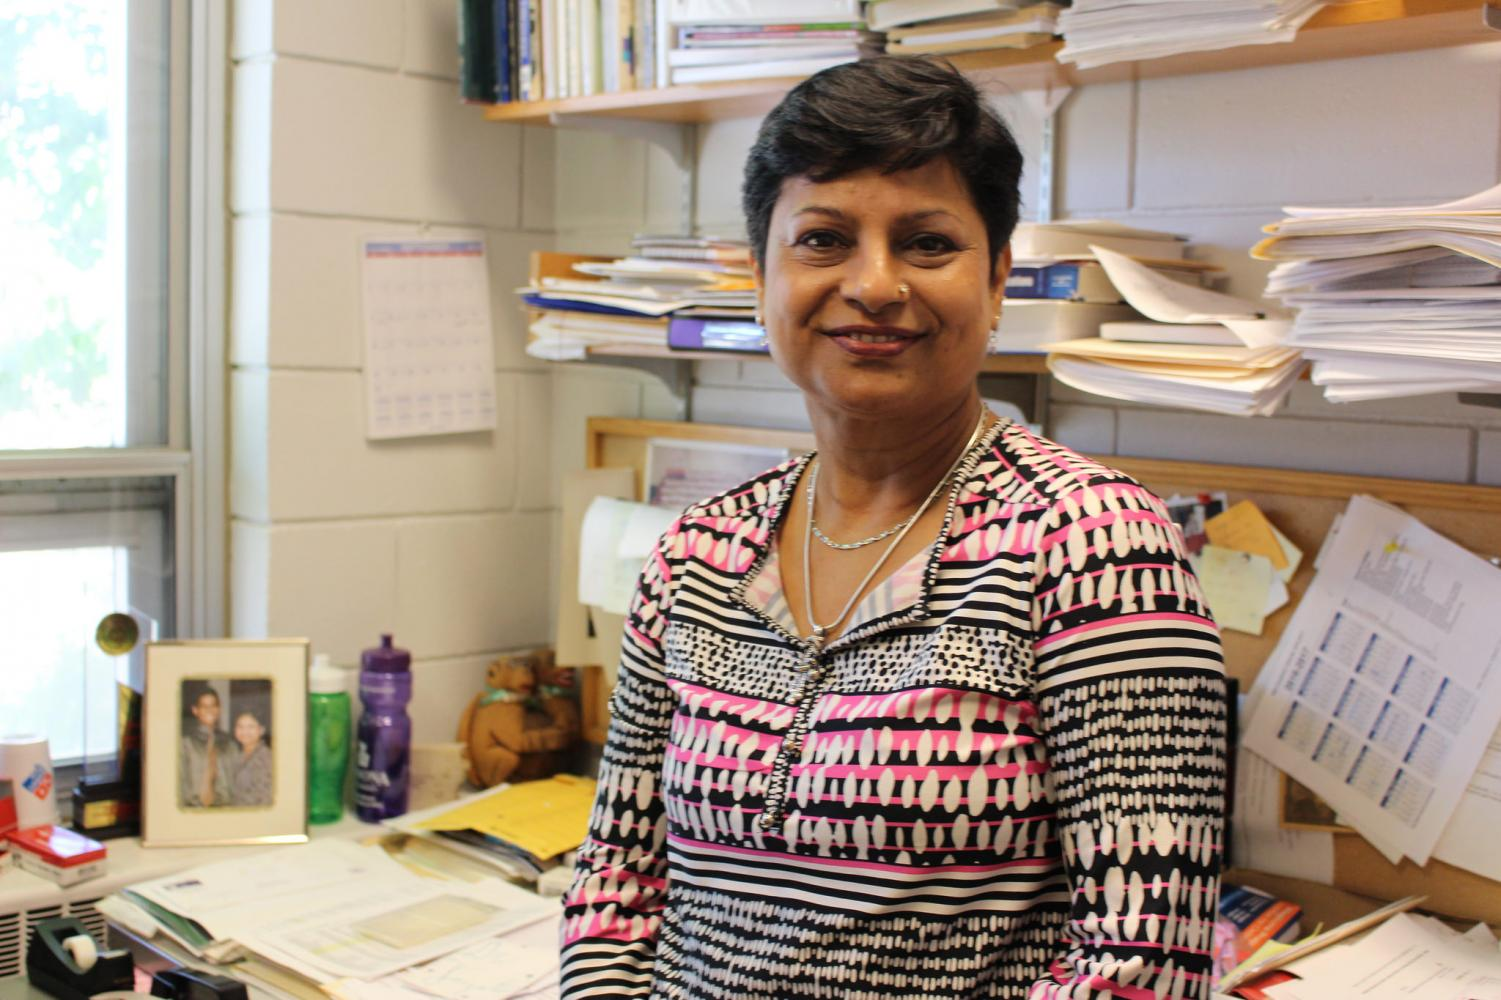 Professor Joyati Debnath is this year's recipient of the Distinguished Faculty and Staff Award. Debnath has been teaching in Winona State University's Mathematics and Statistics department since 1989.